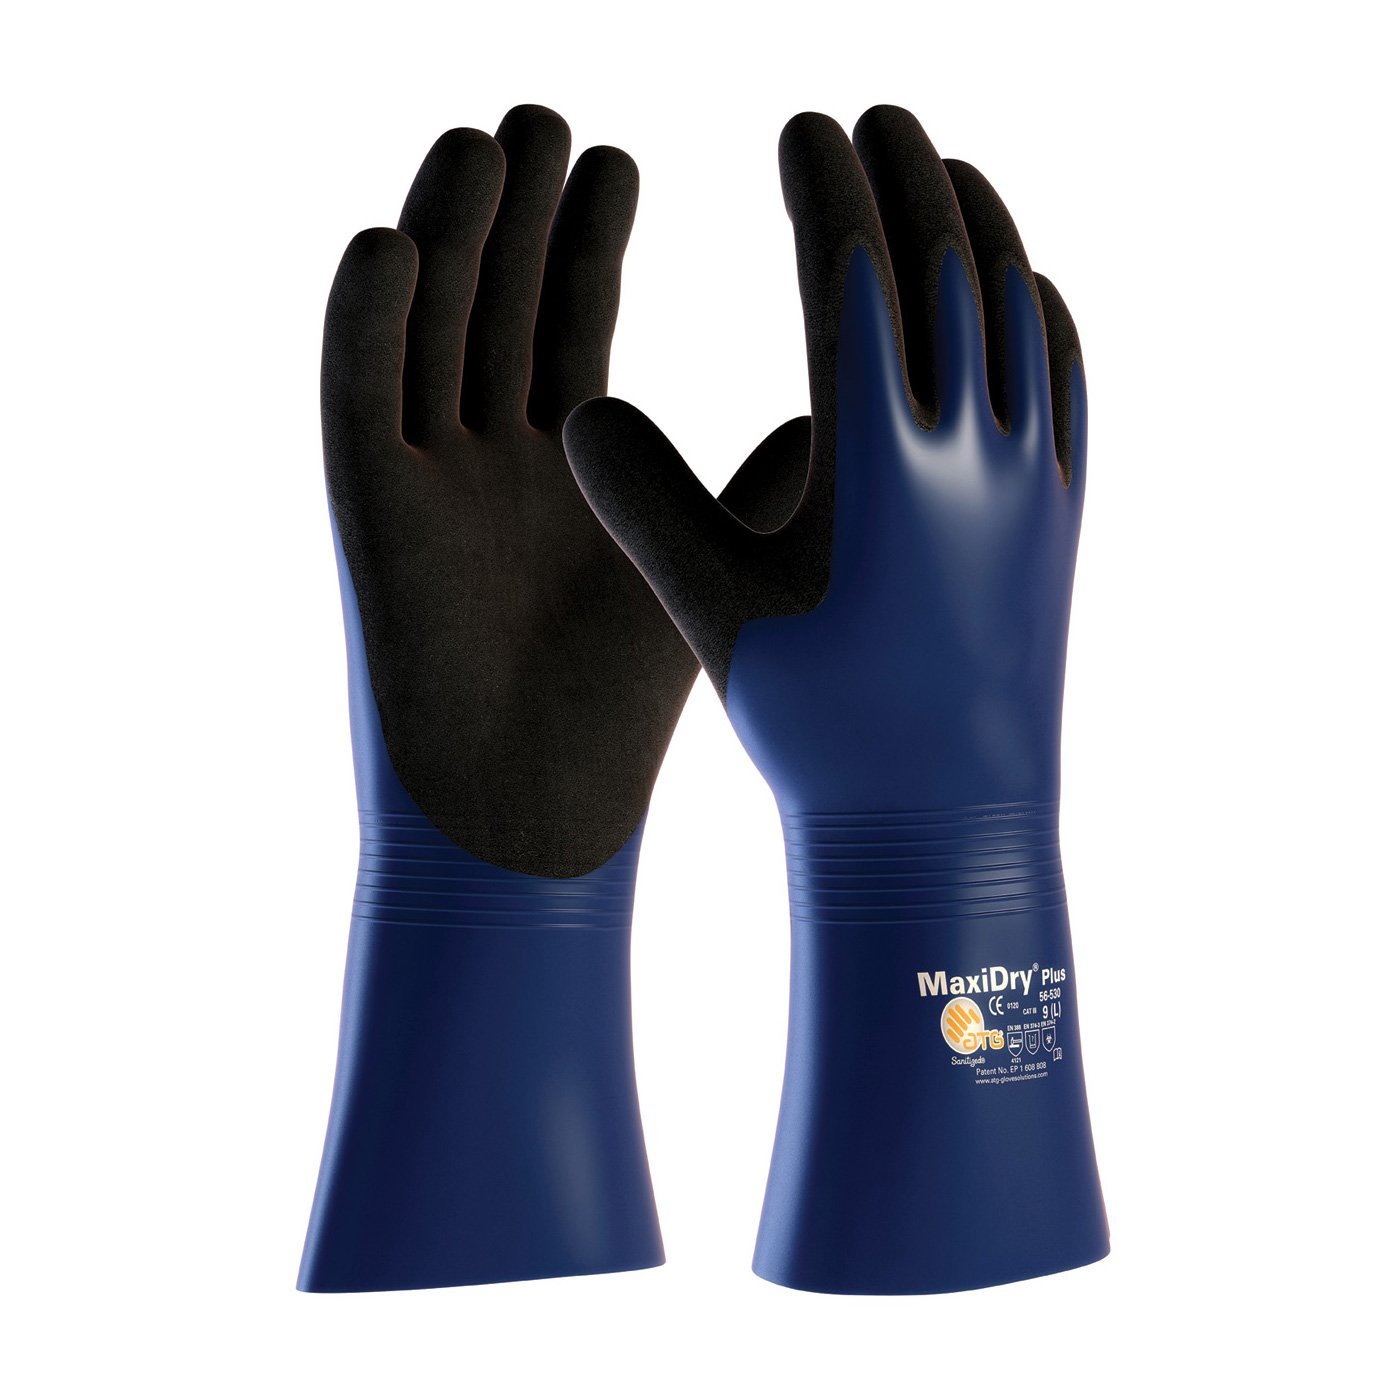 MaxiDry Plus 56-530/XL Nitrile Coated Glove with Nylon/Lycra Liner and Non-Slip Grip on Palm and Fingers